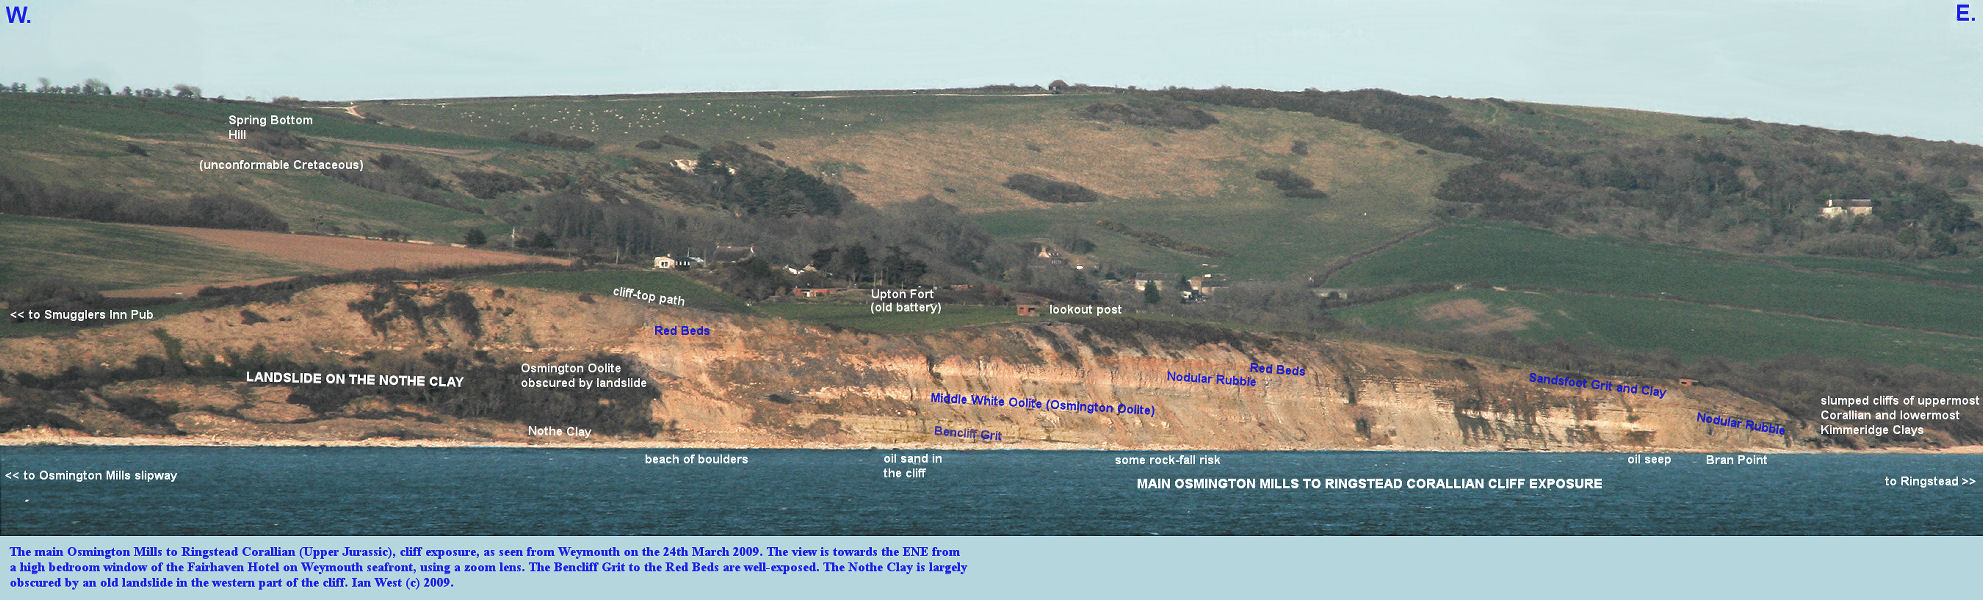 The main cliff exposure of Corallian (Upper Jurassic) strata between Osmington Mills, and Ringstead, Dorset, viewed from Weymouth in evening light, 24th March 2009